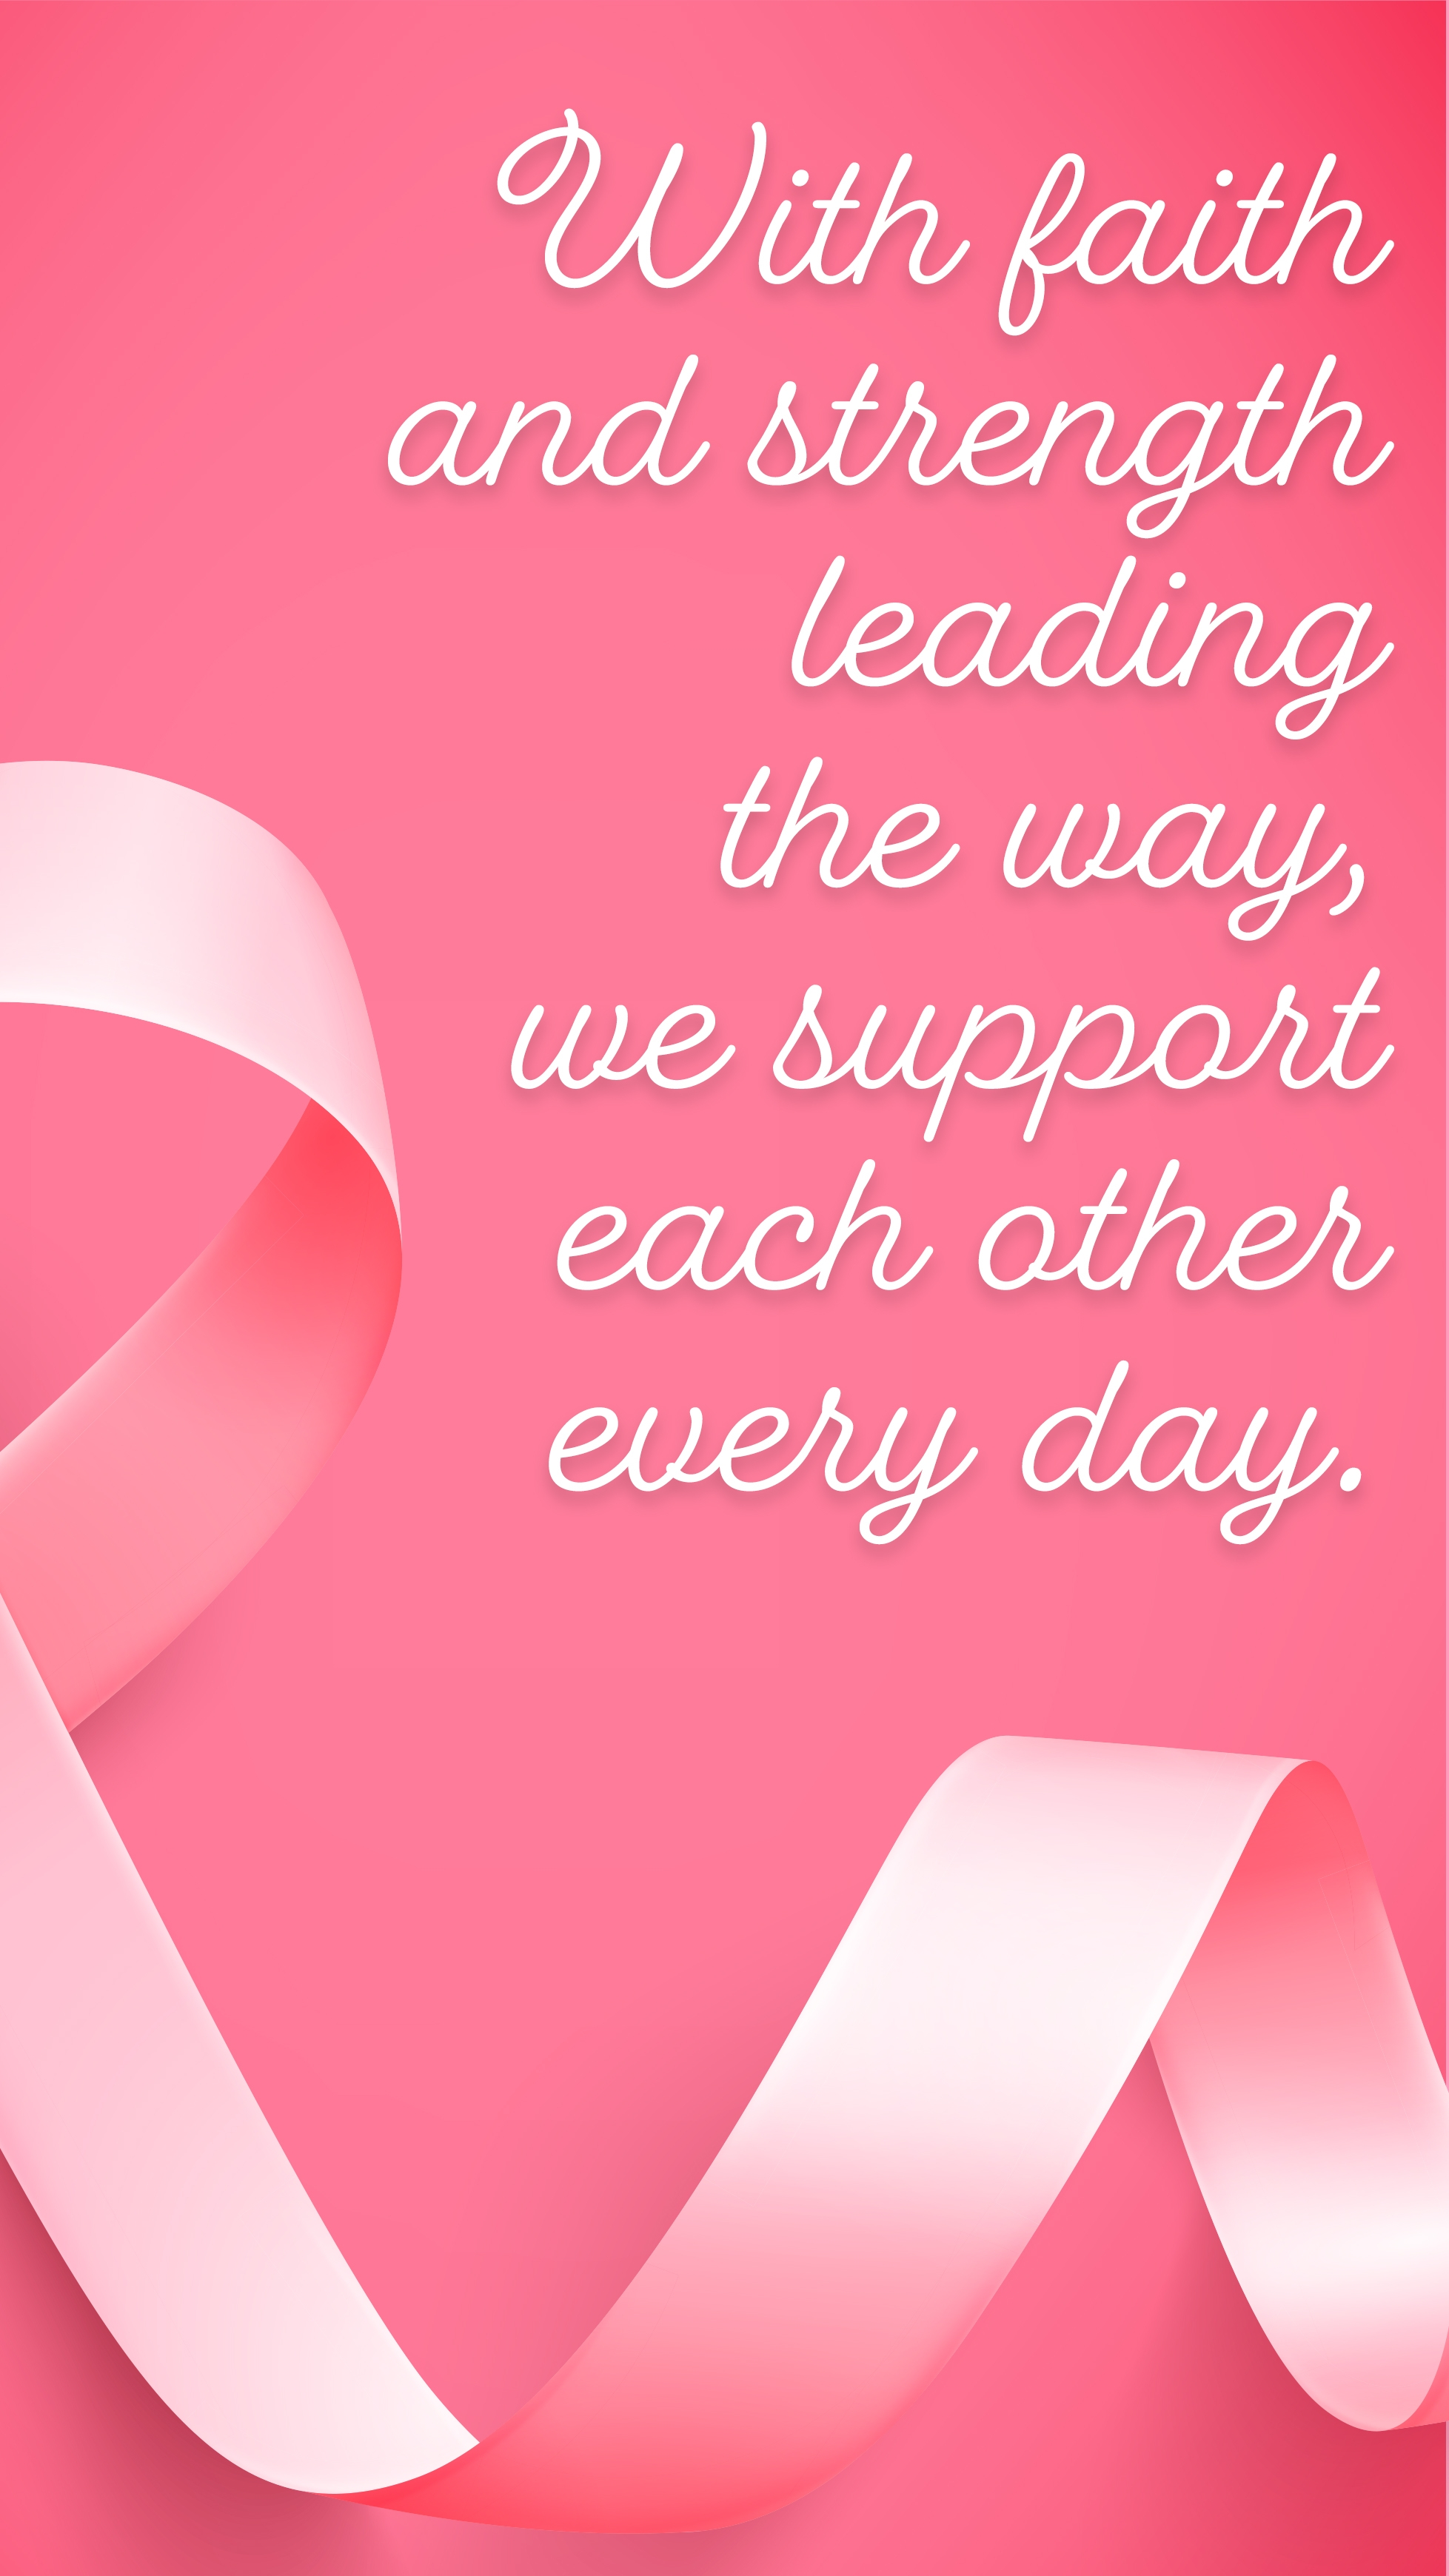 Support Each Other